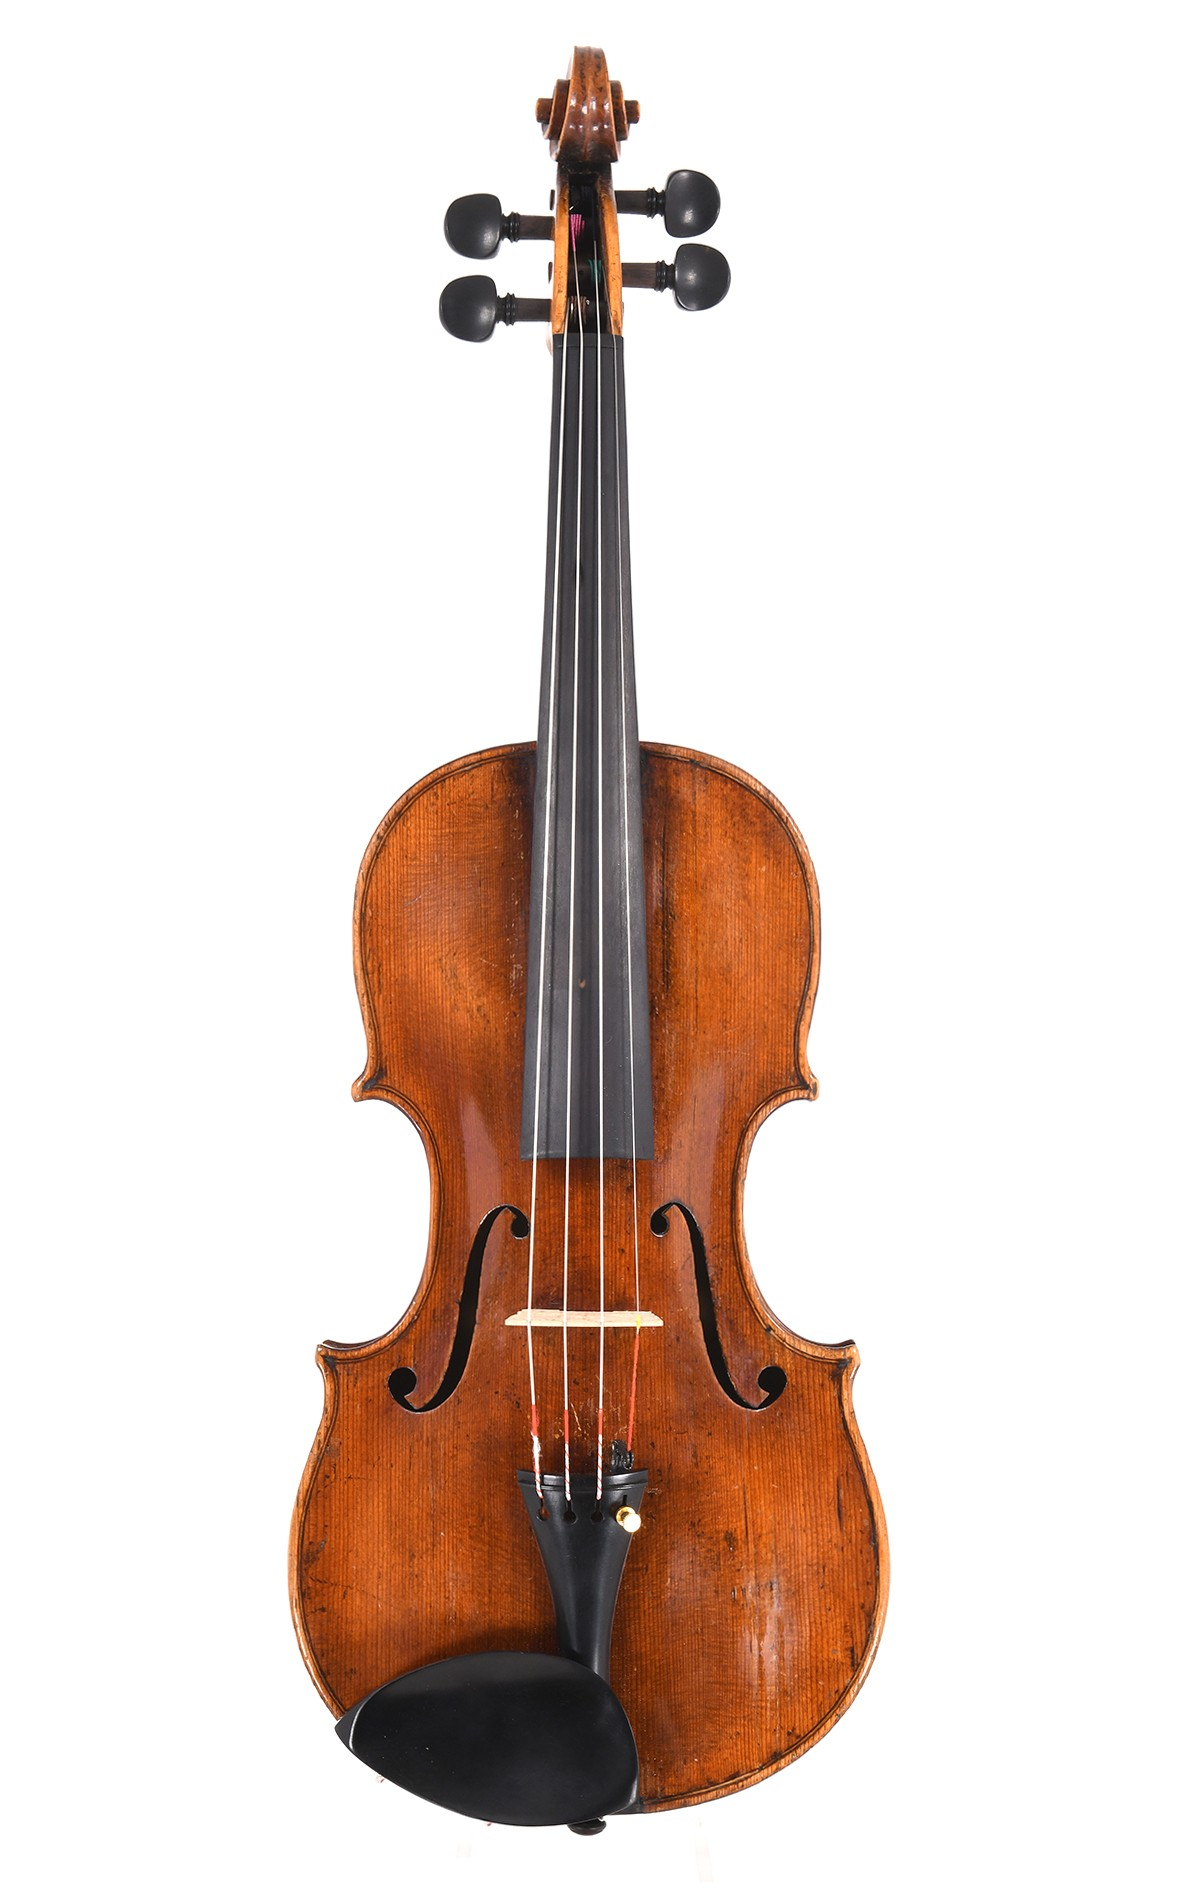 Antique professional violin from Saxony, made around 1800